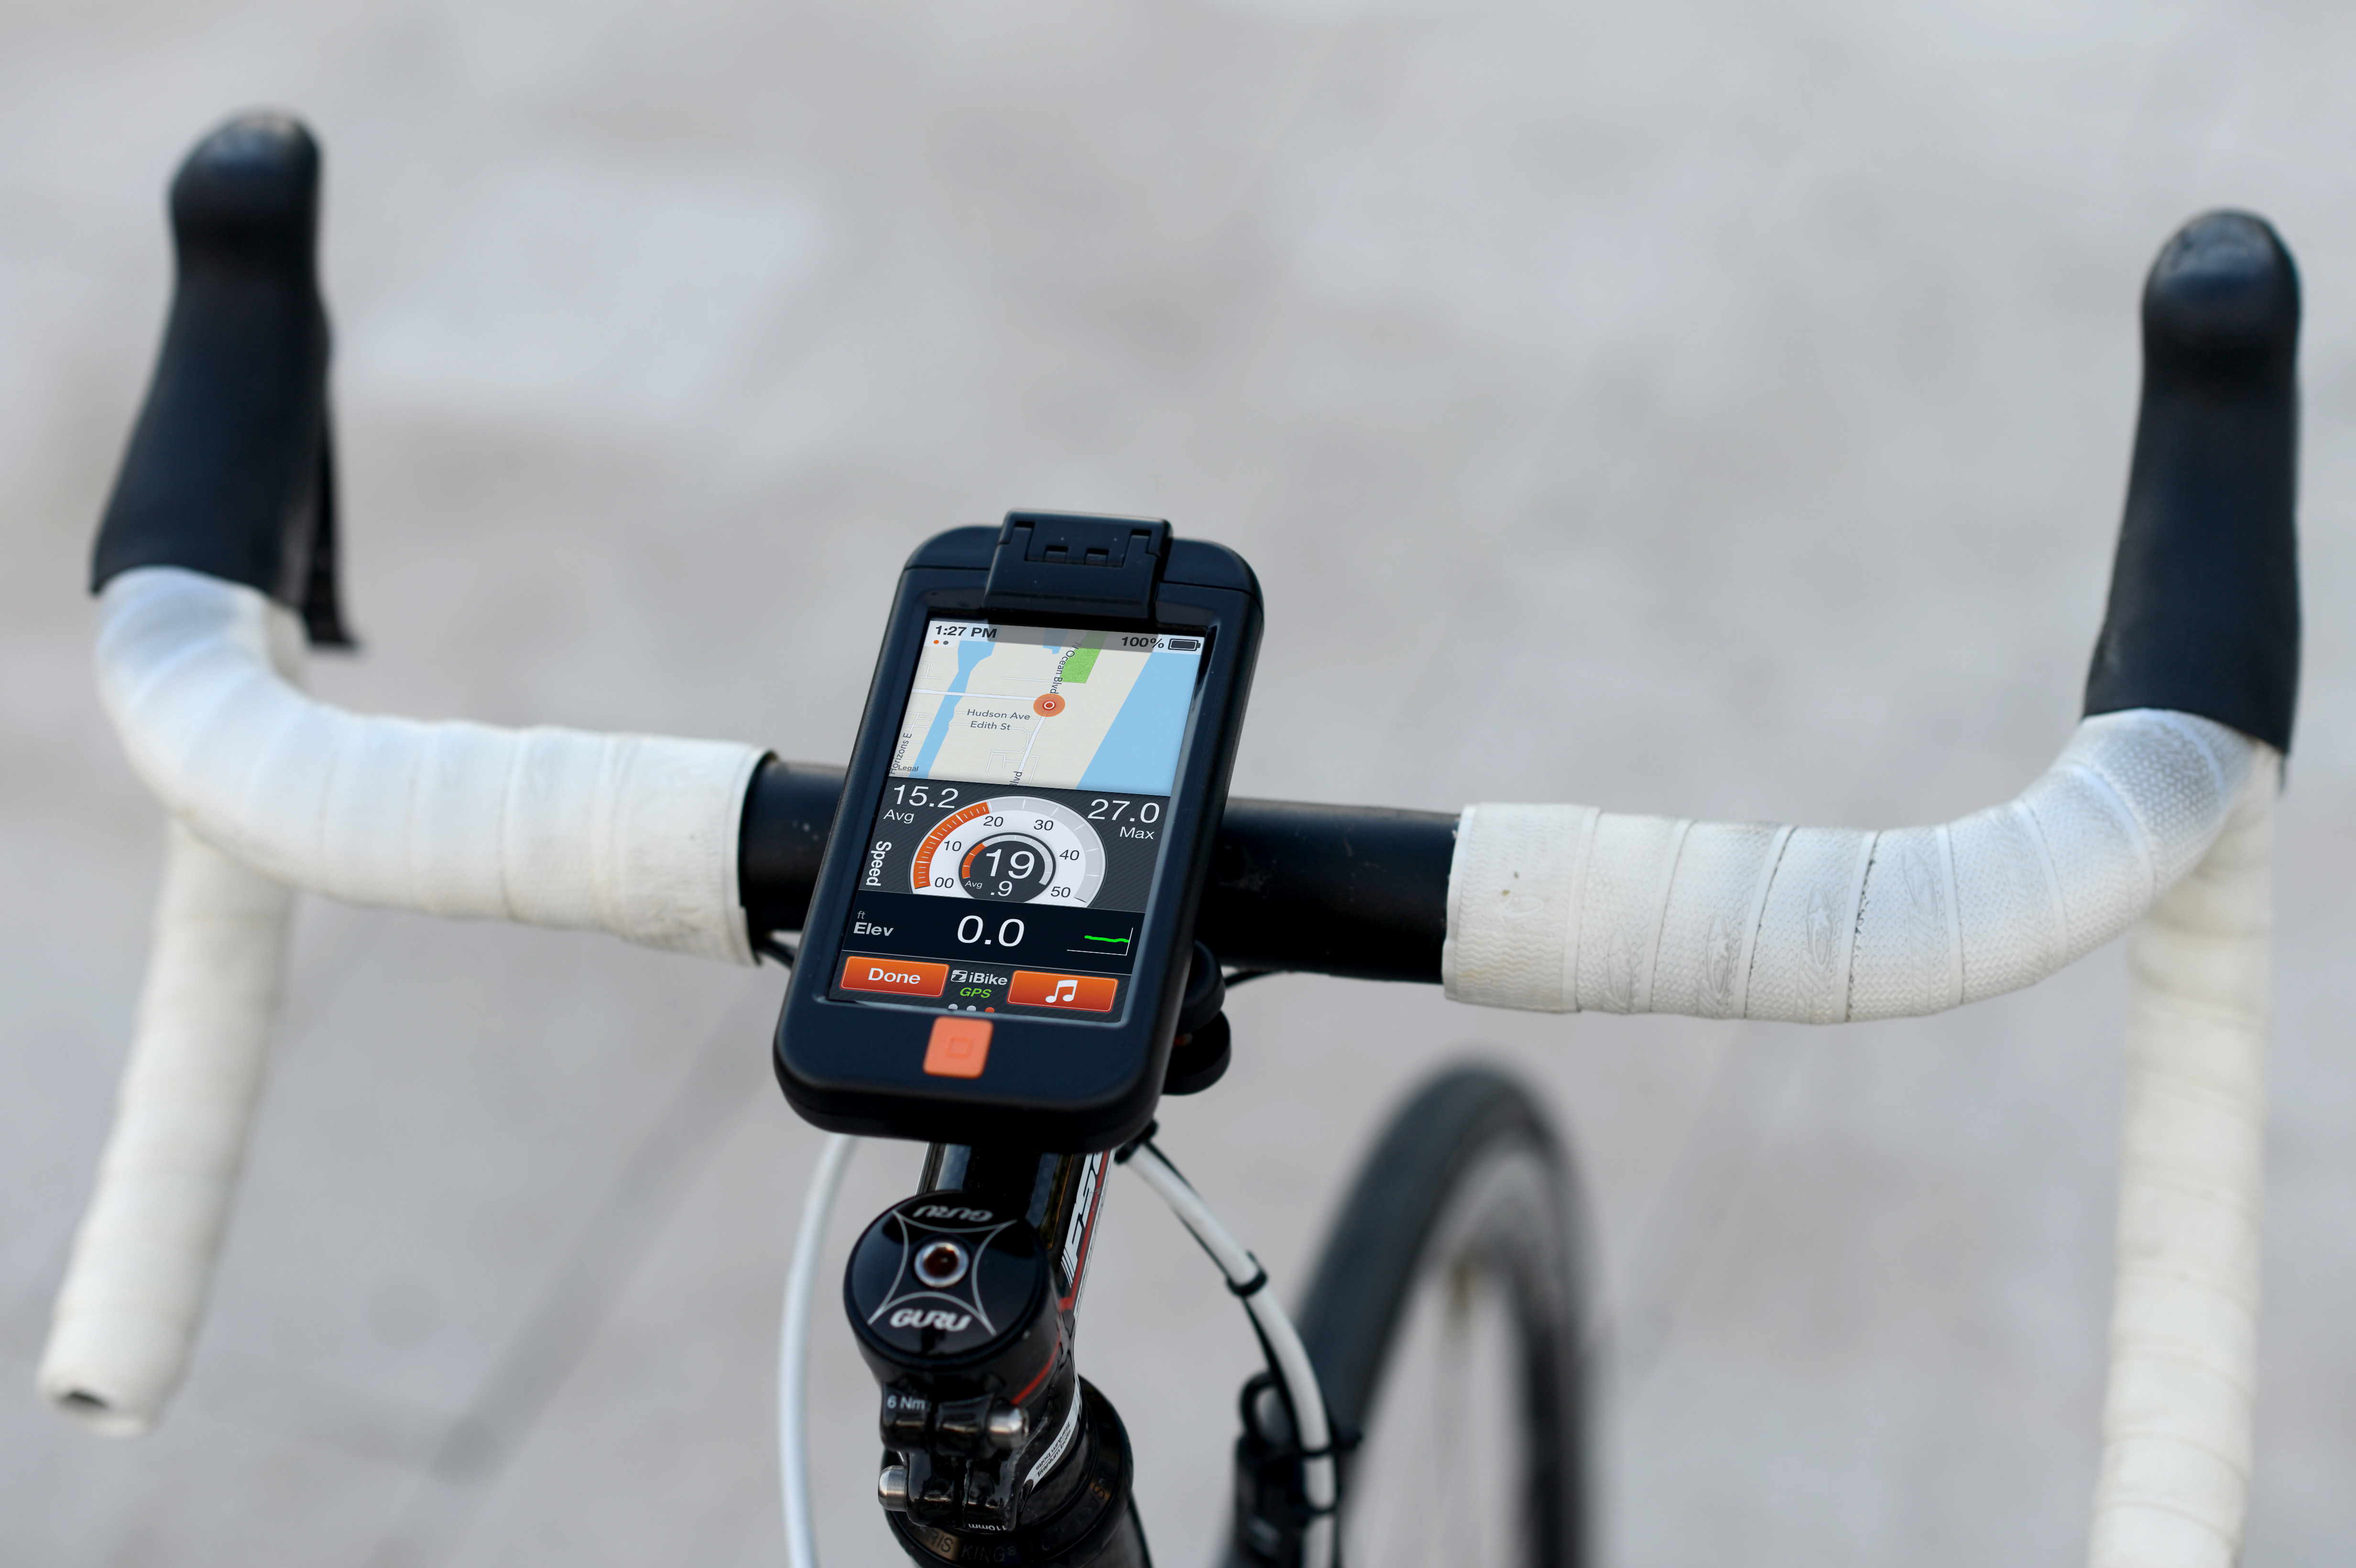 Ibike Announces New Bike Computers For Iphone 5 4s 4 Ibike Gps